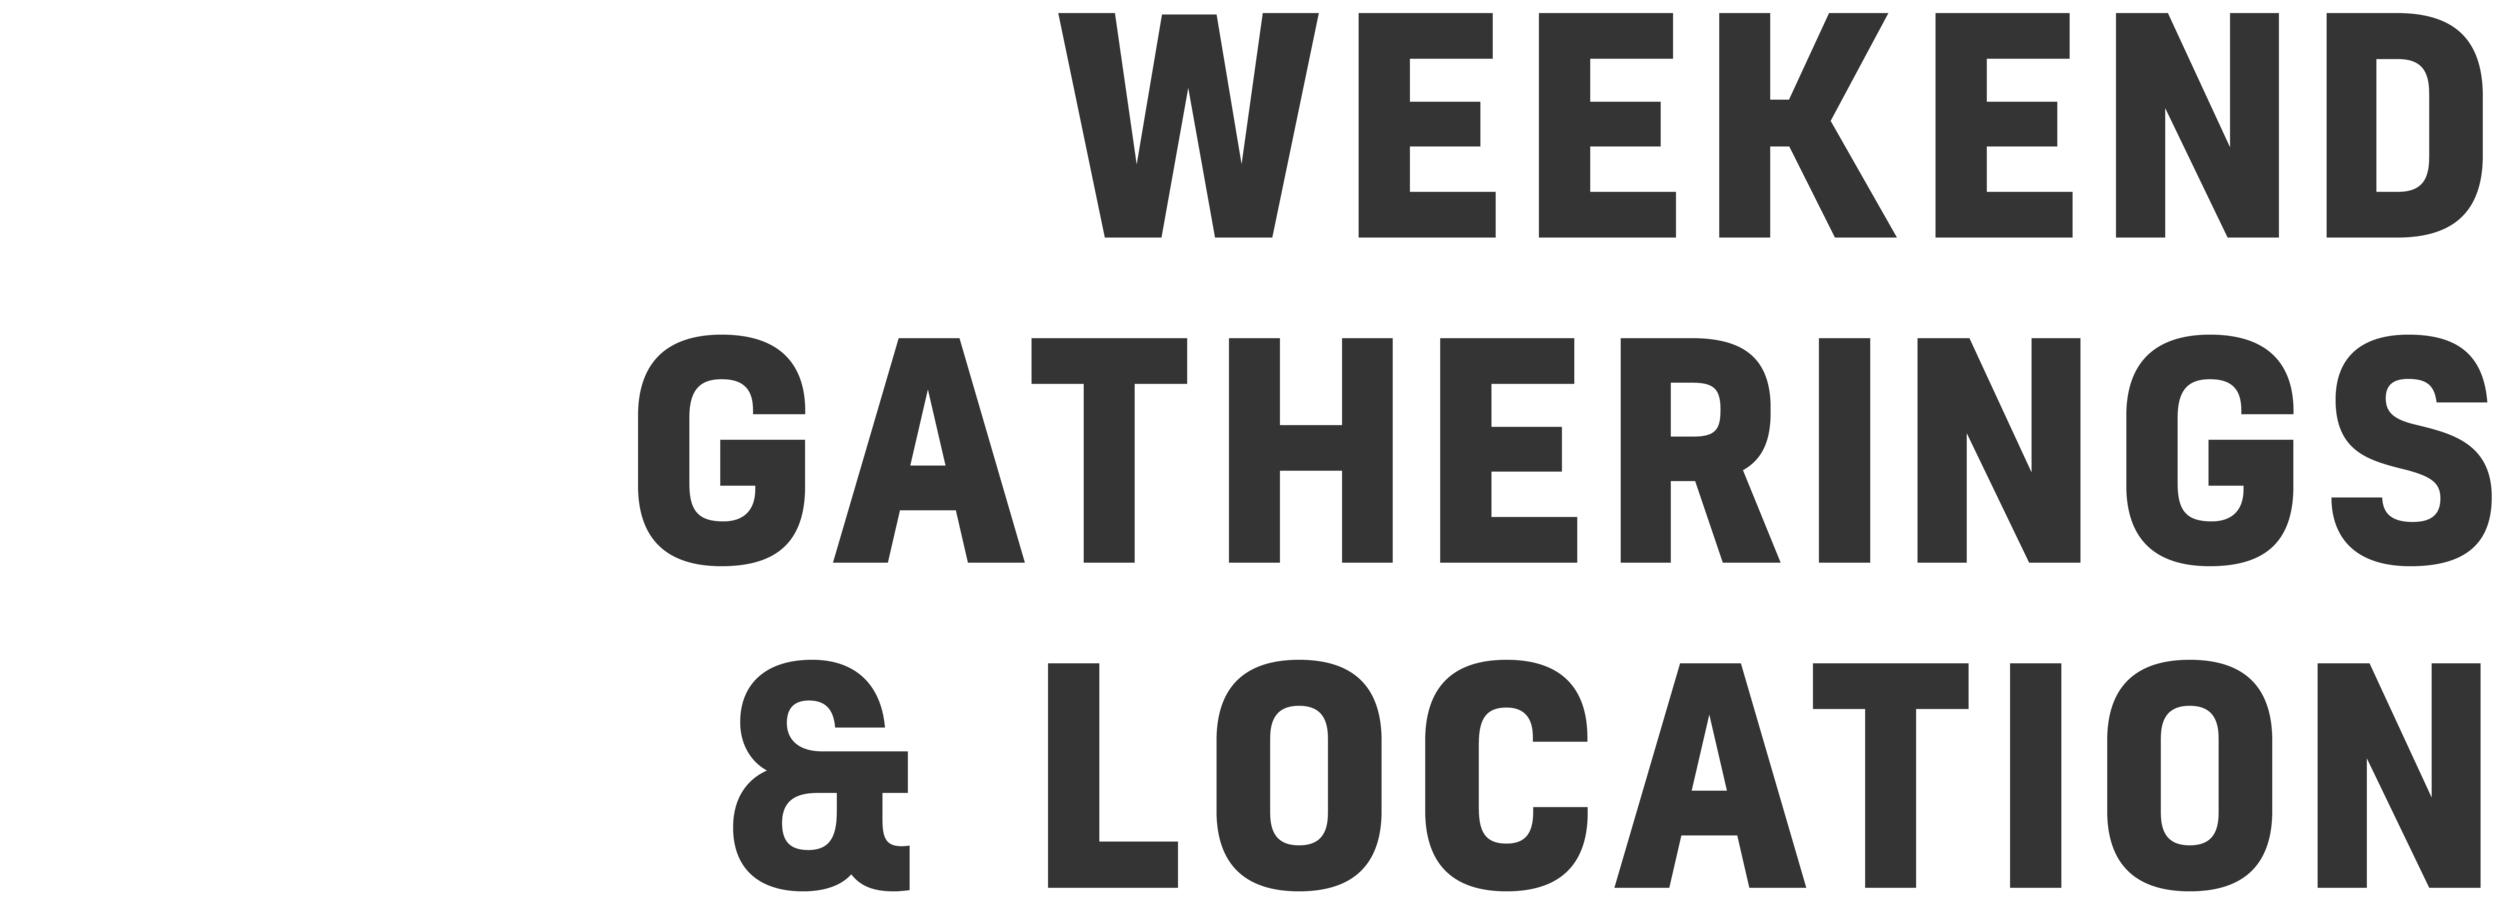 Life Center Central | Weekend Gatherings & Location